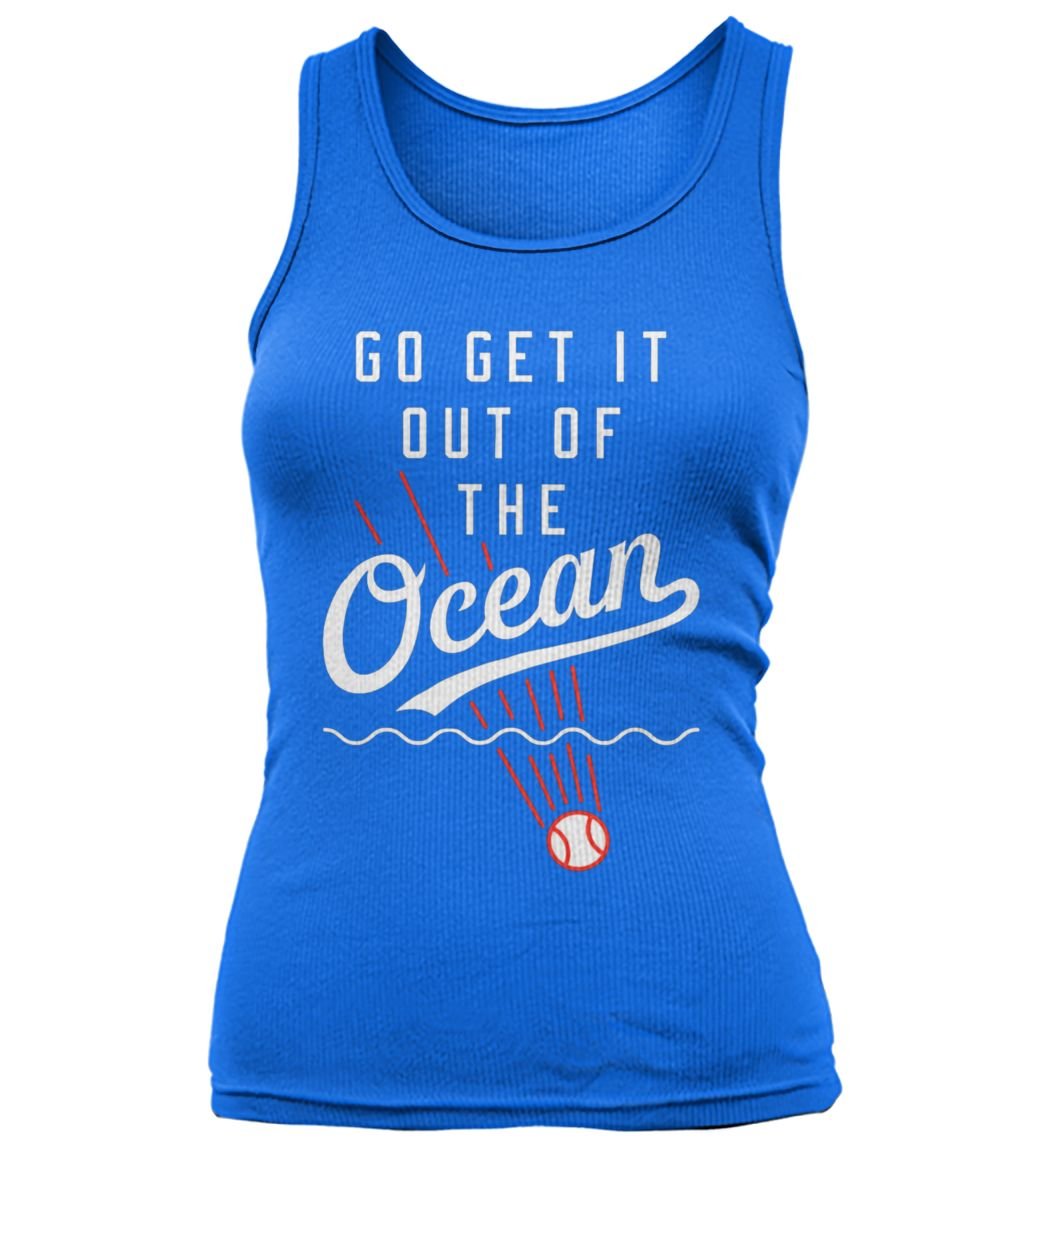 Dodgers go get it out of the ocean women's tank top